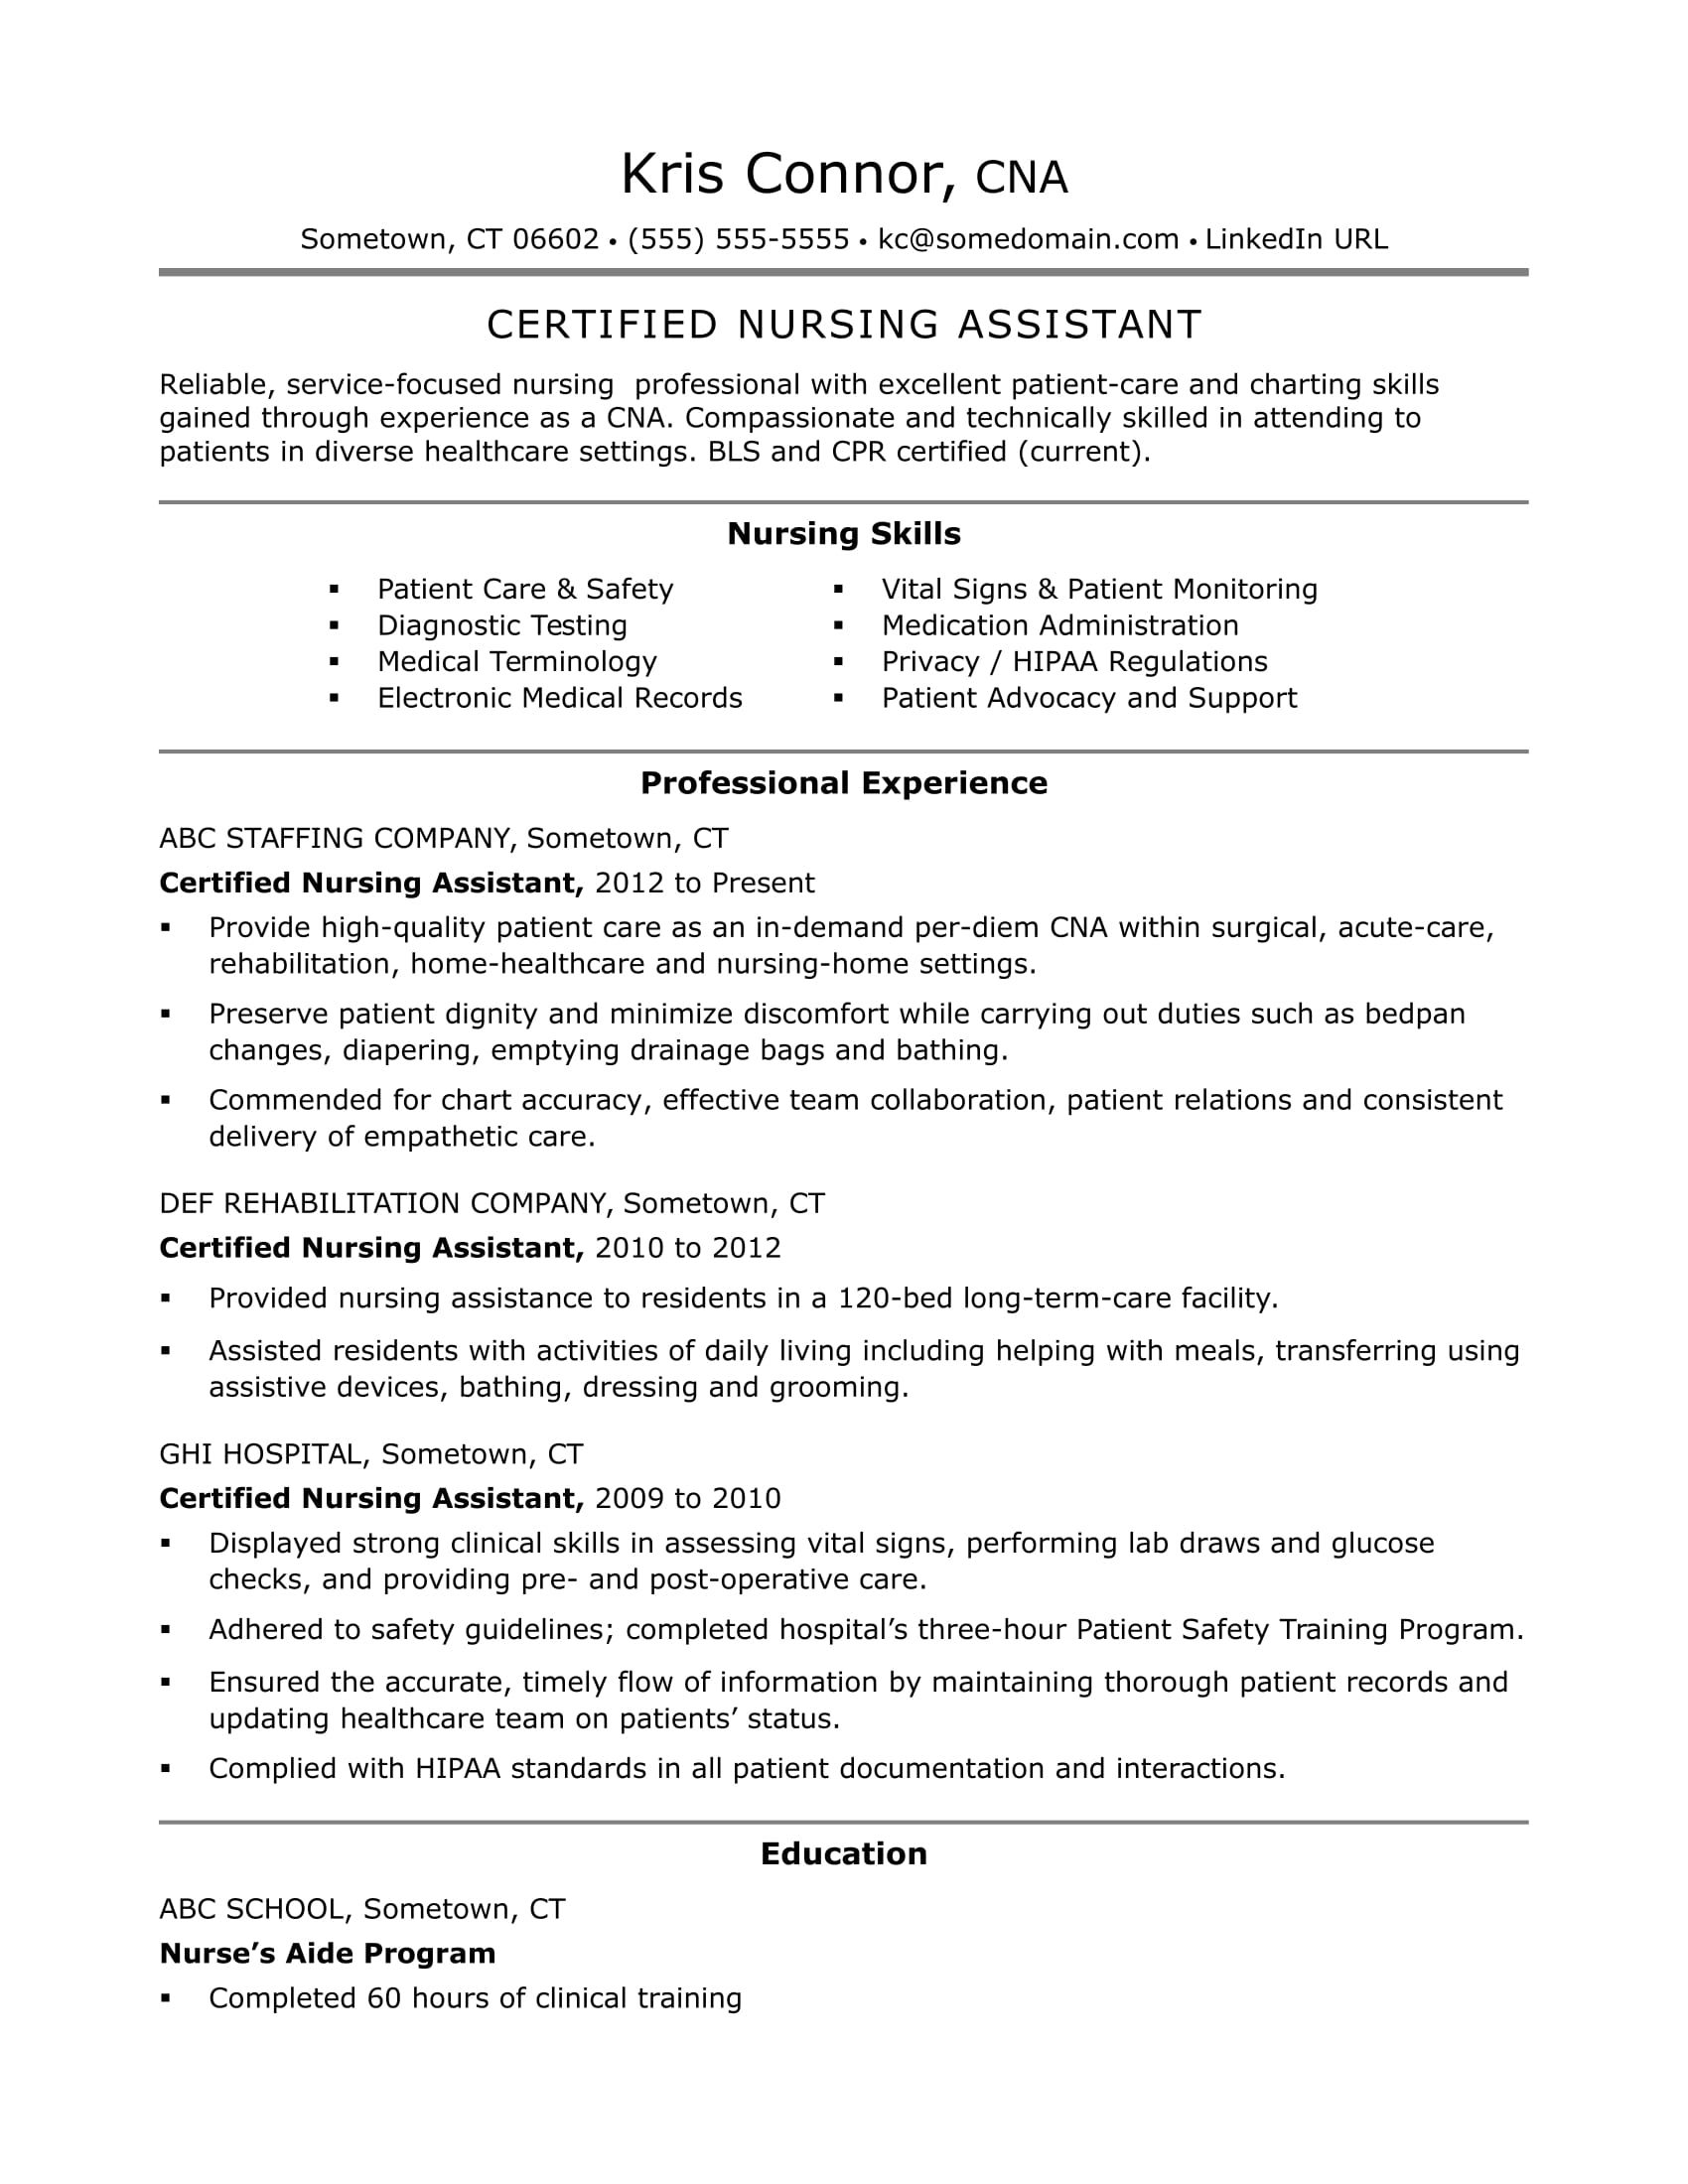 Elegant CNA Resume Example Images